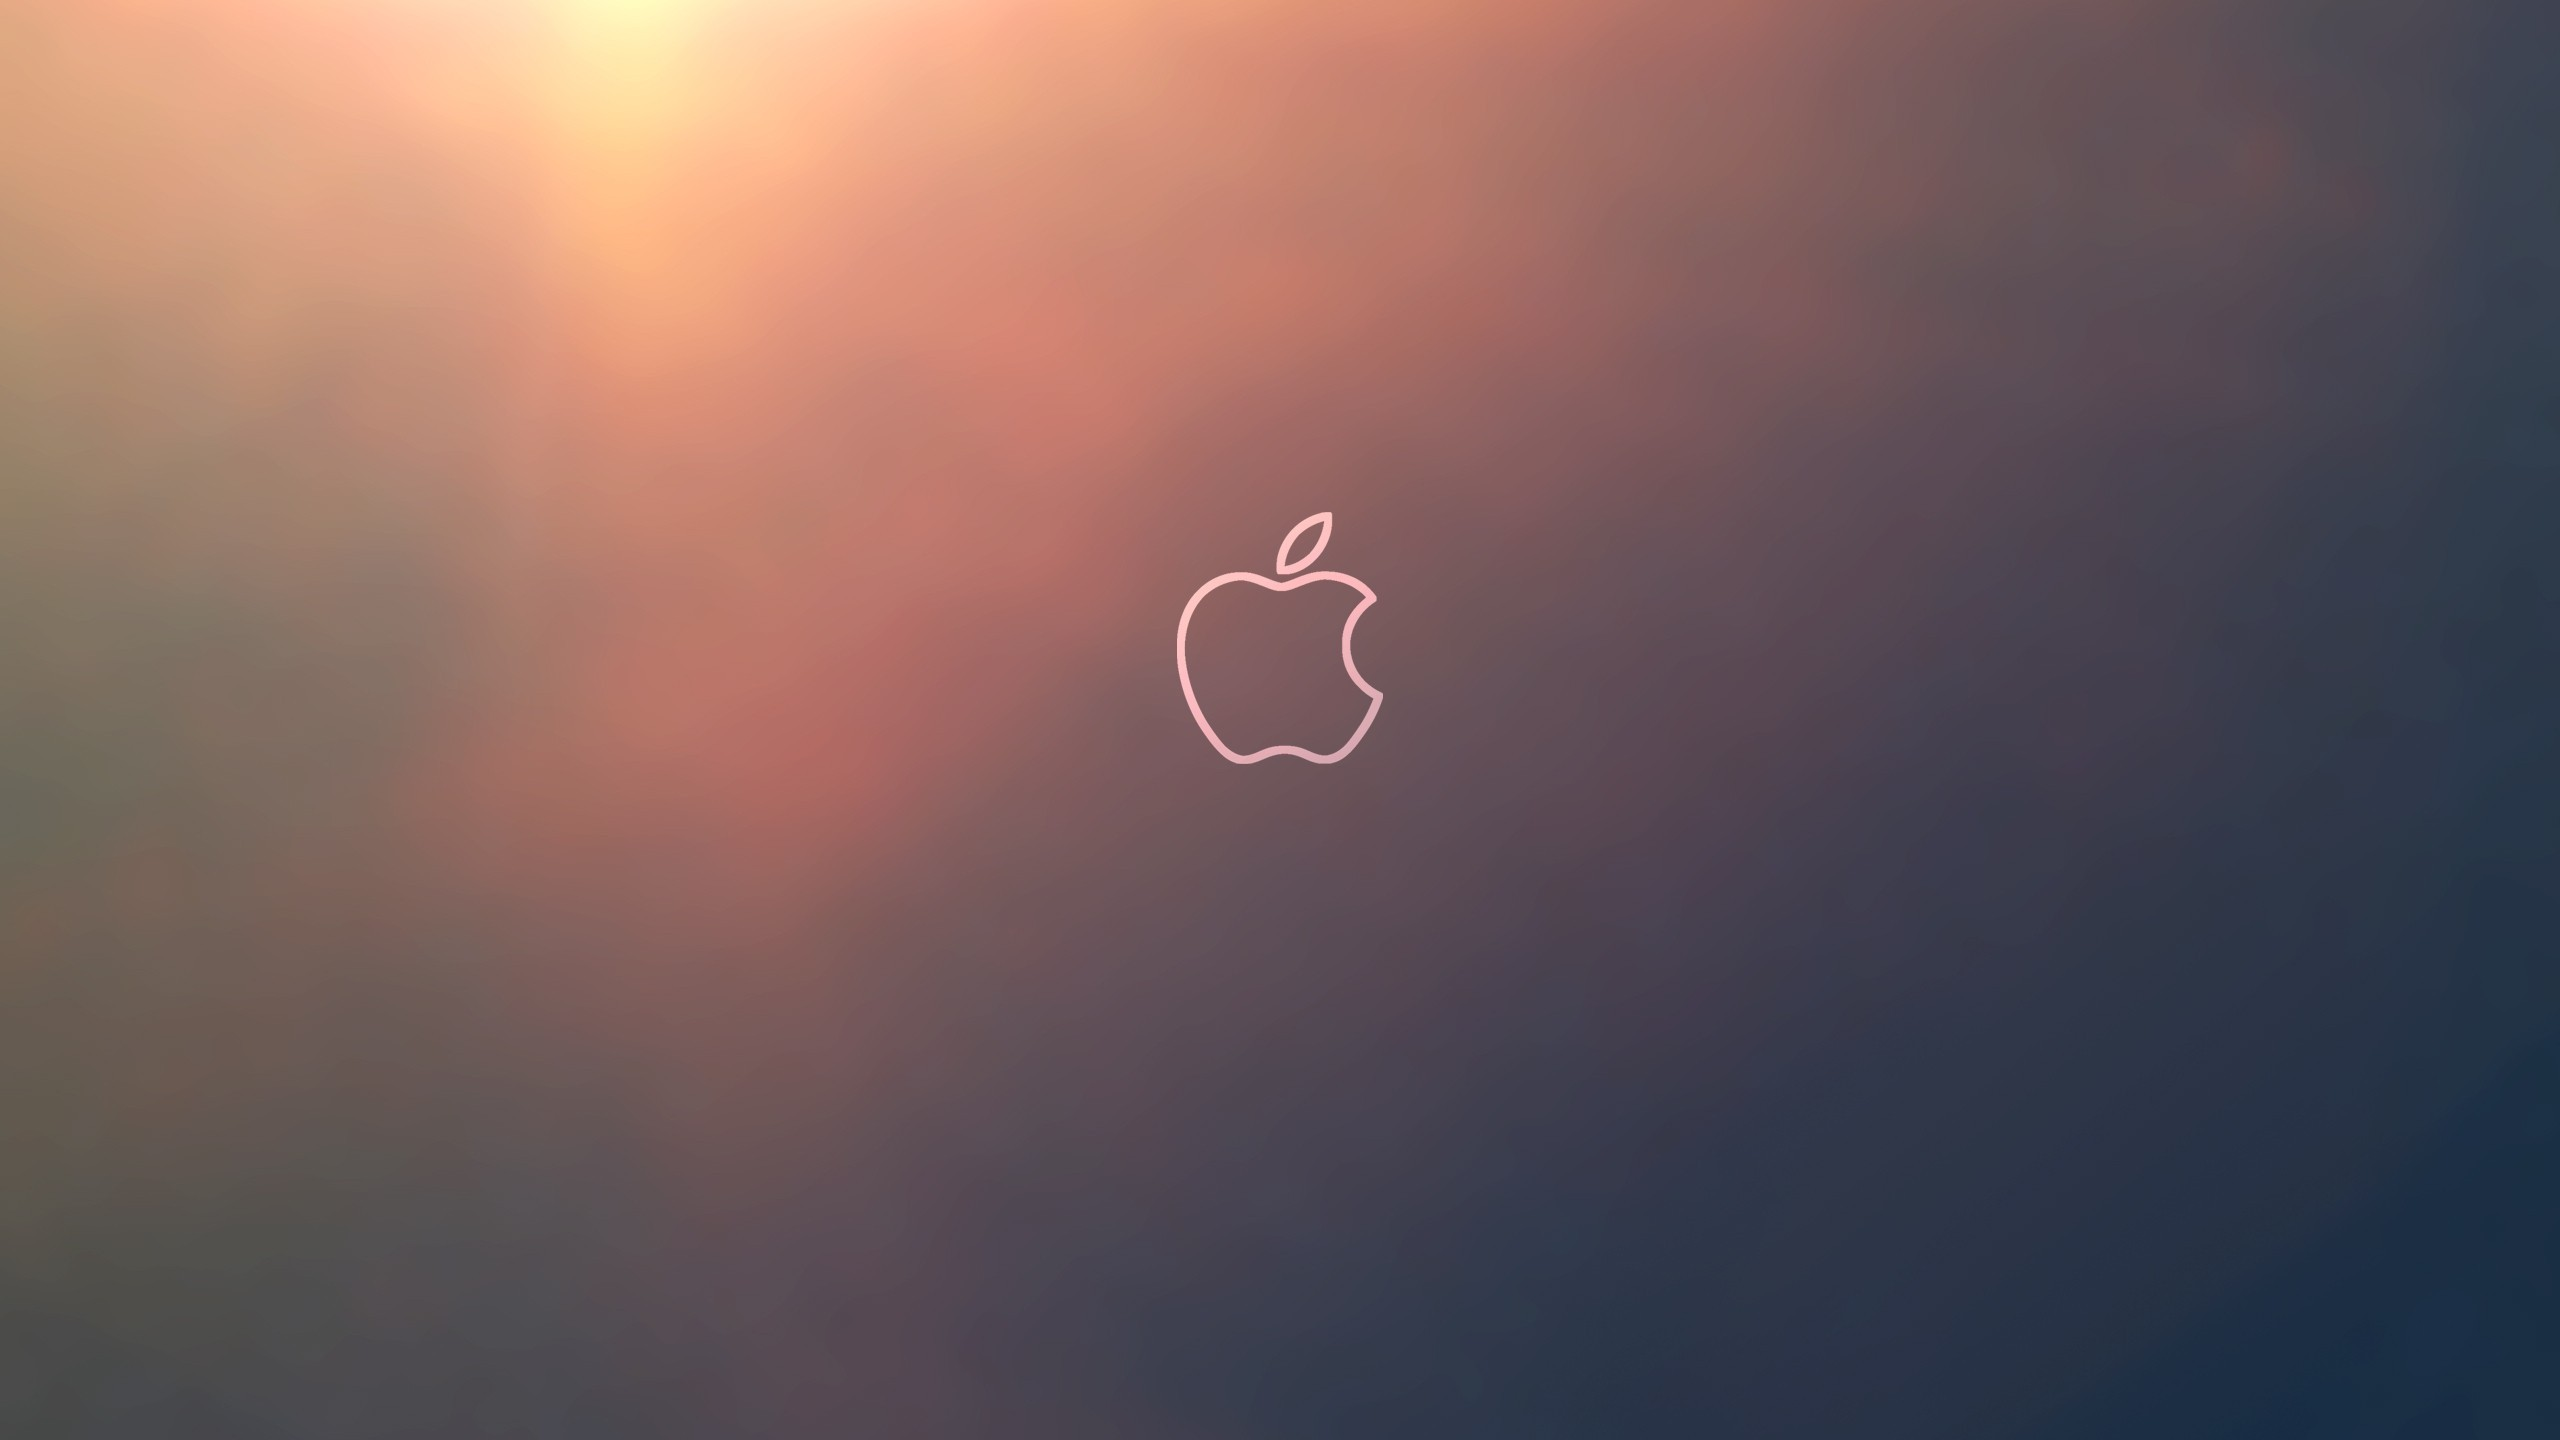 Apple logo outline computer hd wallpaper 2560x jpg 287781 2560x1440